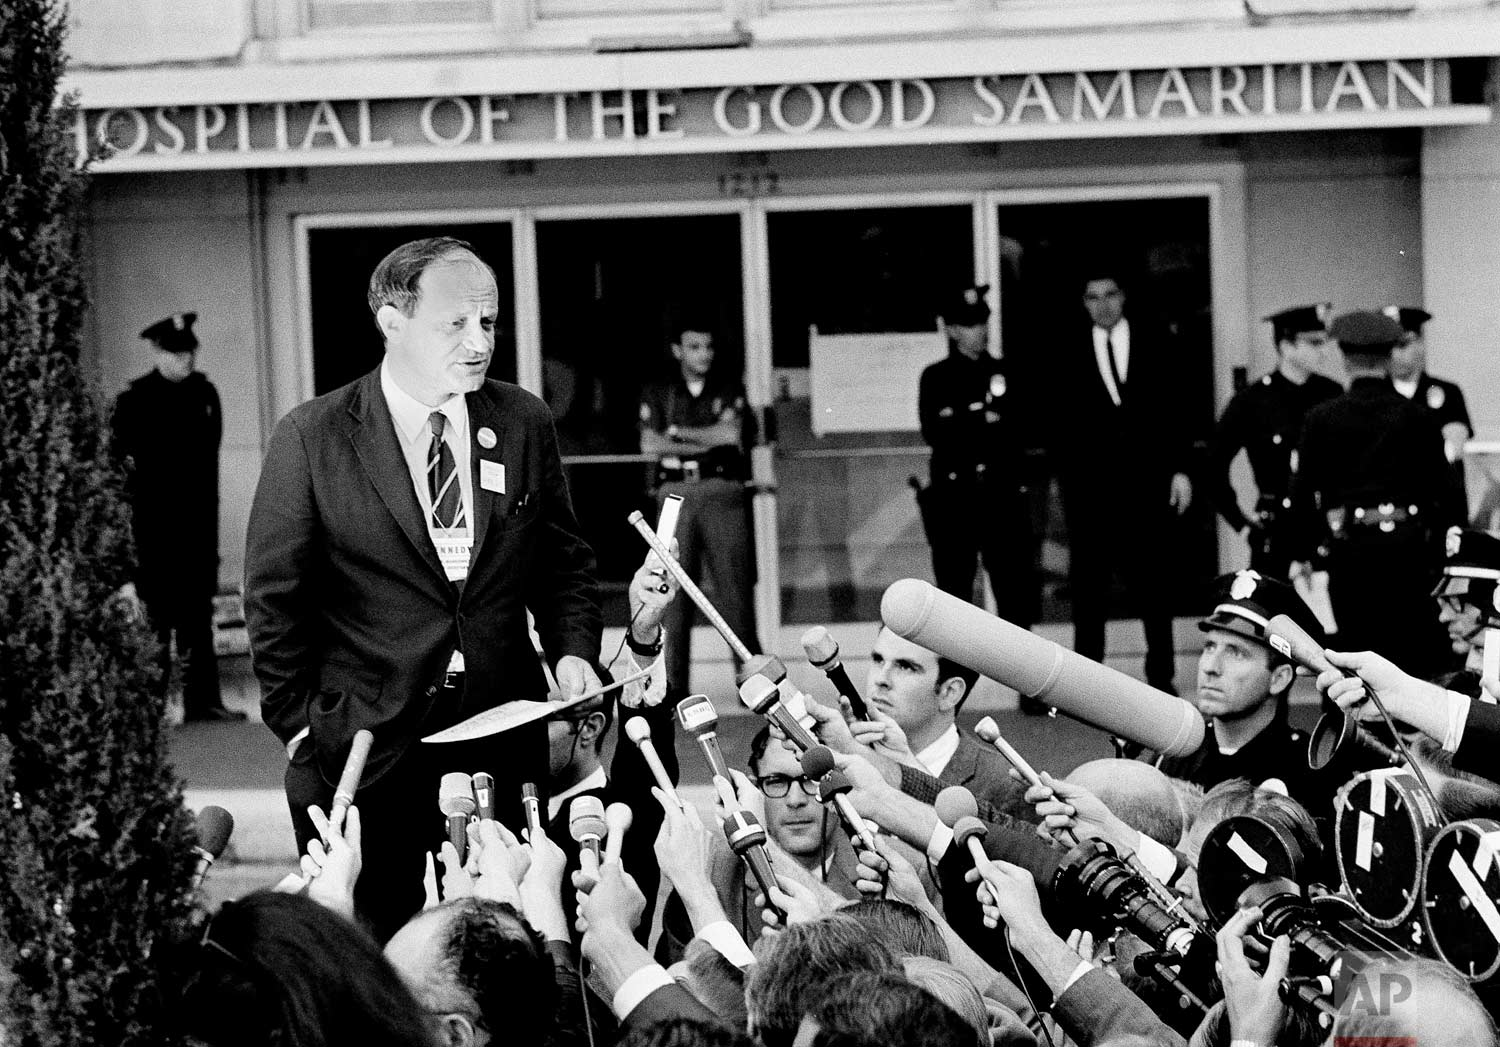 """In this June 5, 1968 photo, Frank Mankiewicz, Sen. Robert F. Kennedy's press secretary, tells a news conference outside Good Samaritan hospital in Los Angeles that Kennedy emerged from three hours of surgery in """"extremely critical condition."""" Kennedy died later that day. Associated Press Hollywood reporter Bob Thomas was on a one-night political assignment covering Kennedy's victory celebration in the California presidential primary at the Ambassador Hotel when mayhem unfolded before his eyes. (AP Photo)"""